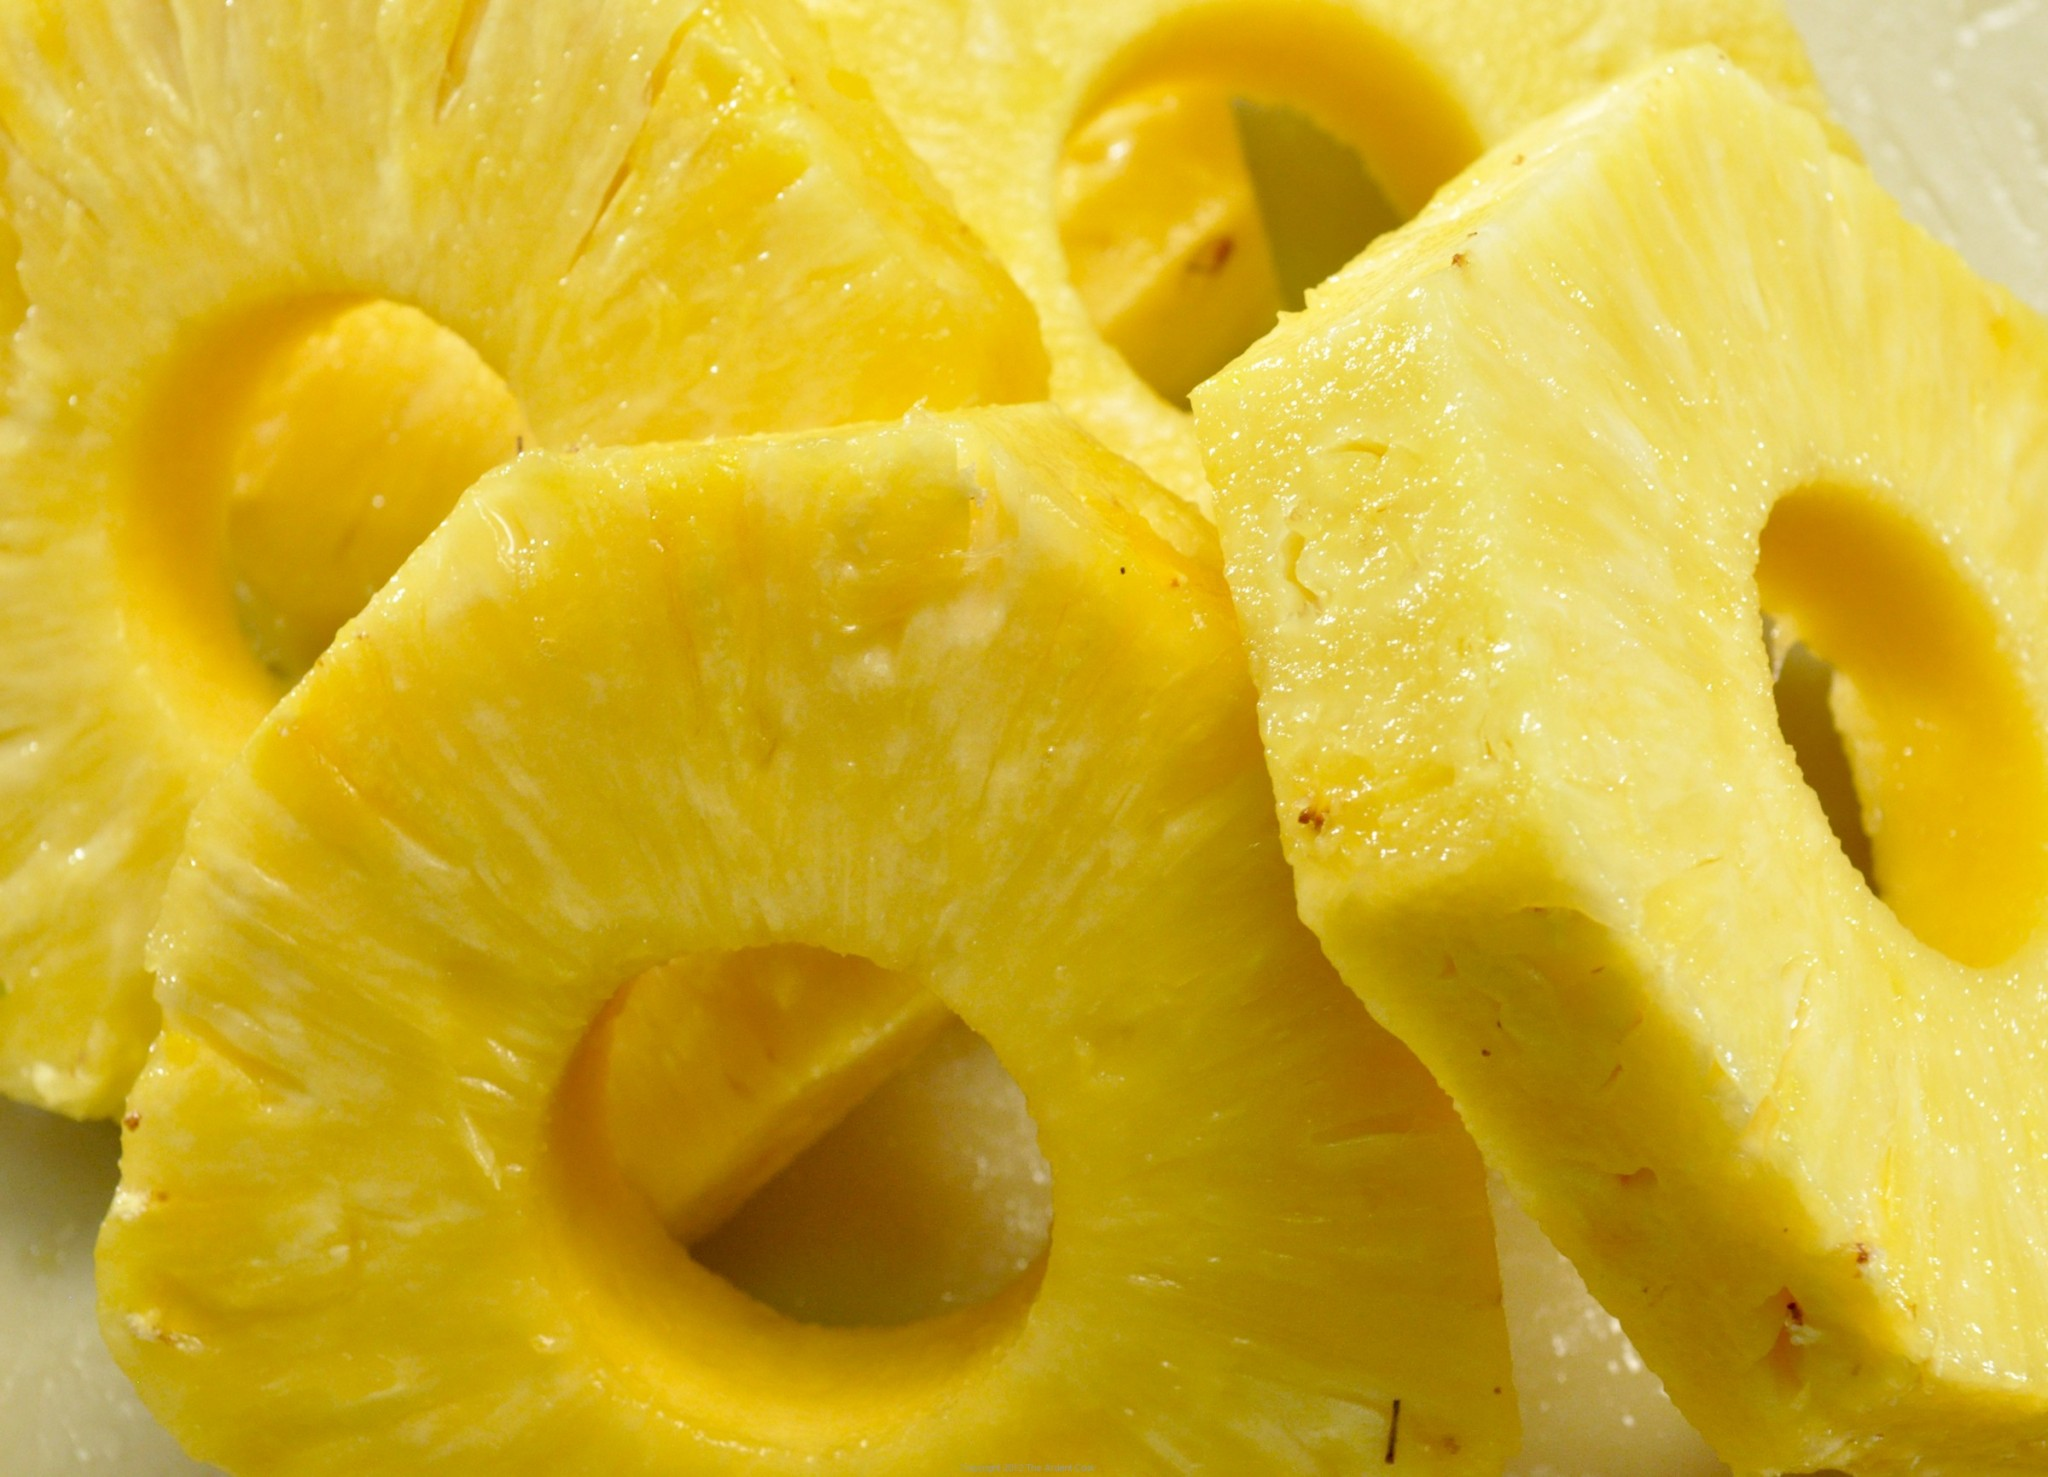 Pineapple - Top 10 Fat-Burning Foods